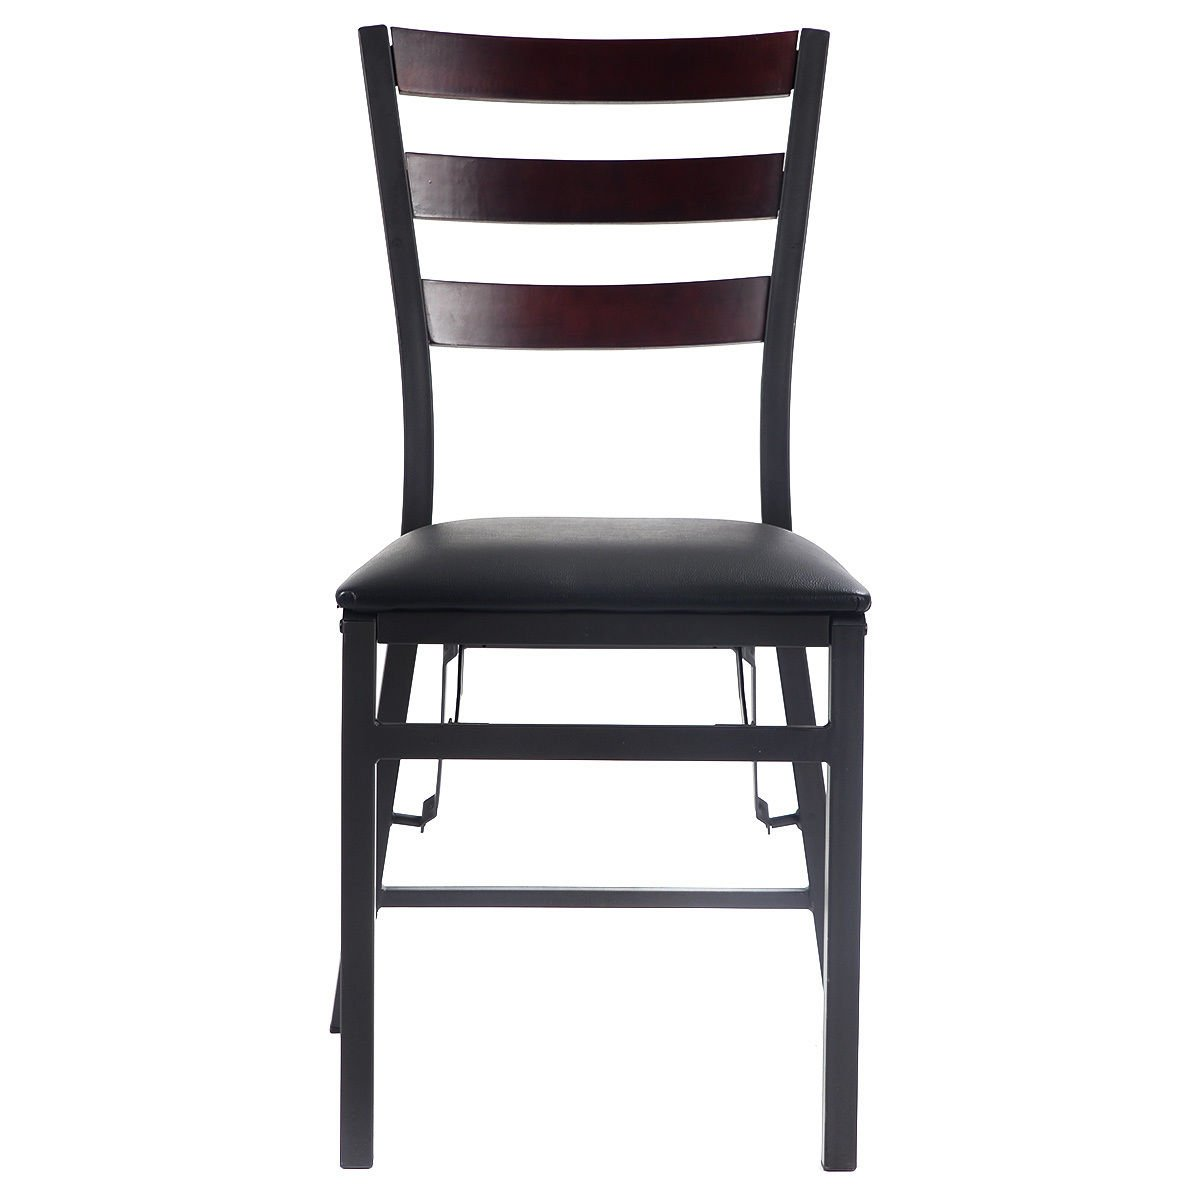 """Giantex Set of 2 Wood Folding Chair Dining Chairs Home Restaurant Furniture Portable (15.6"""" X 17.7"""" X 33.5"""")"""